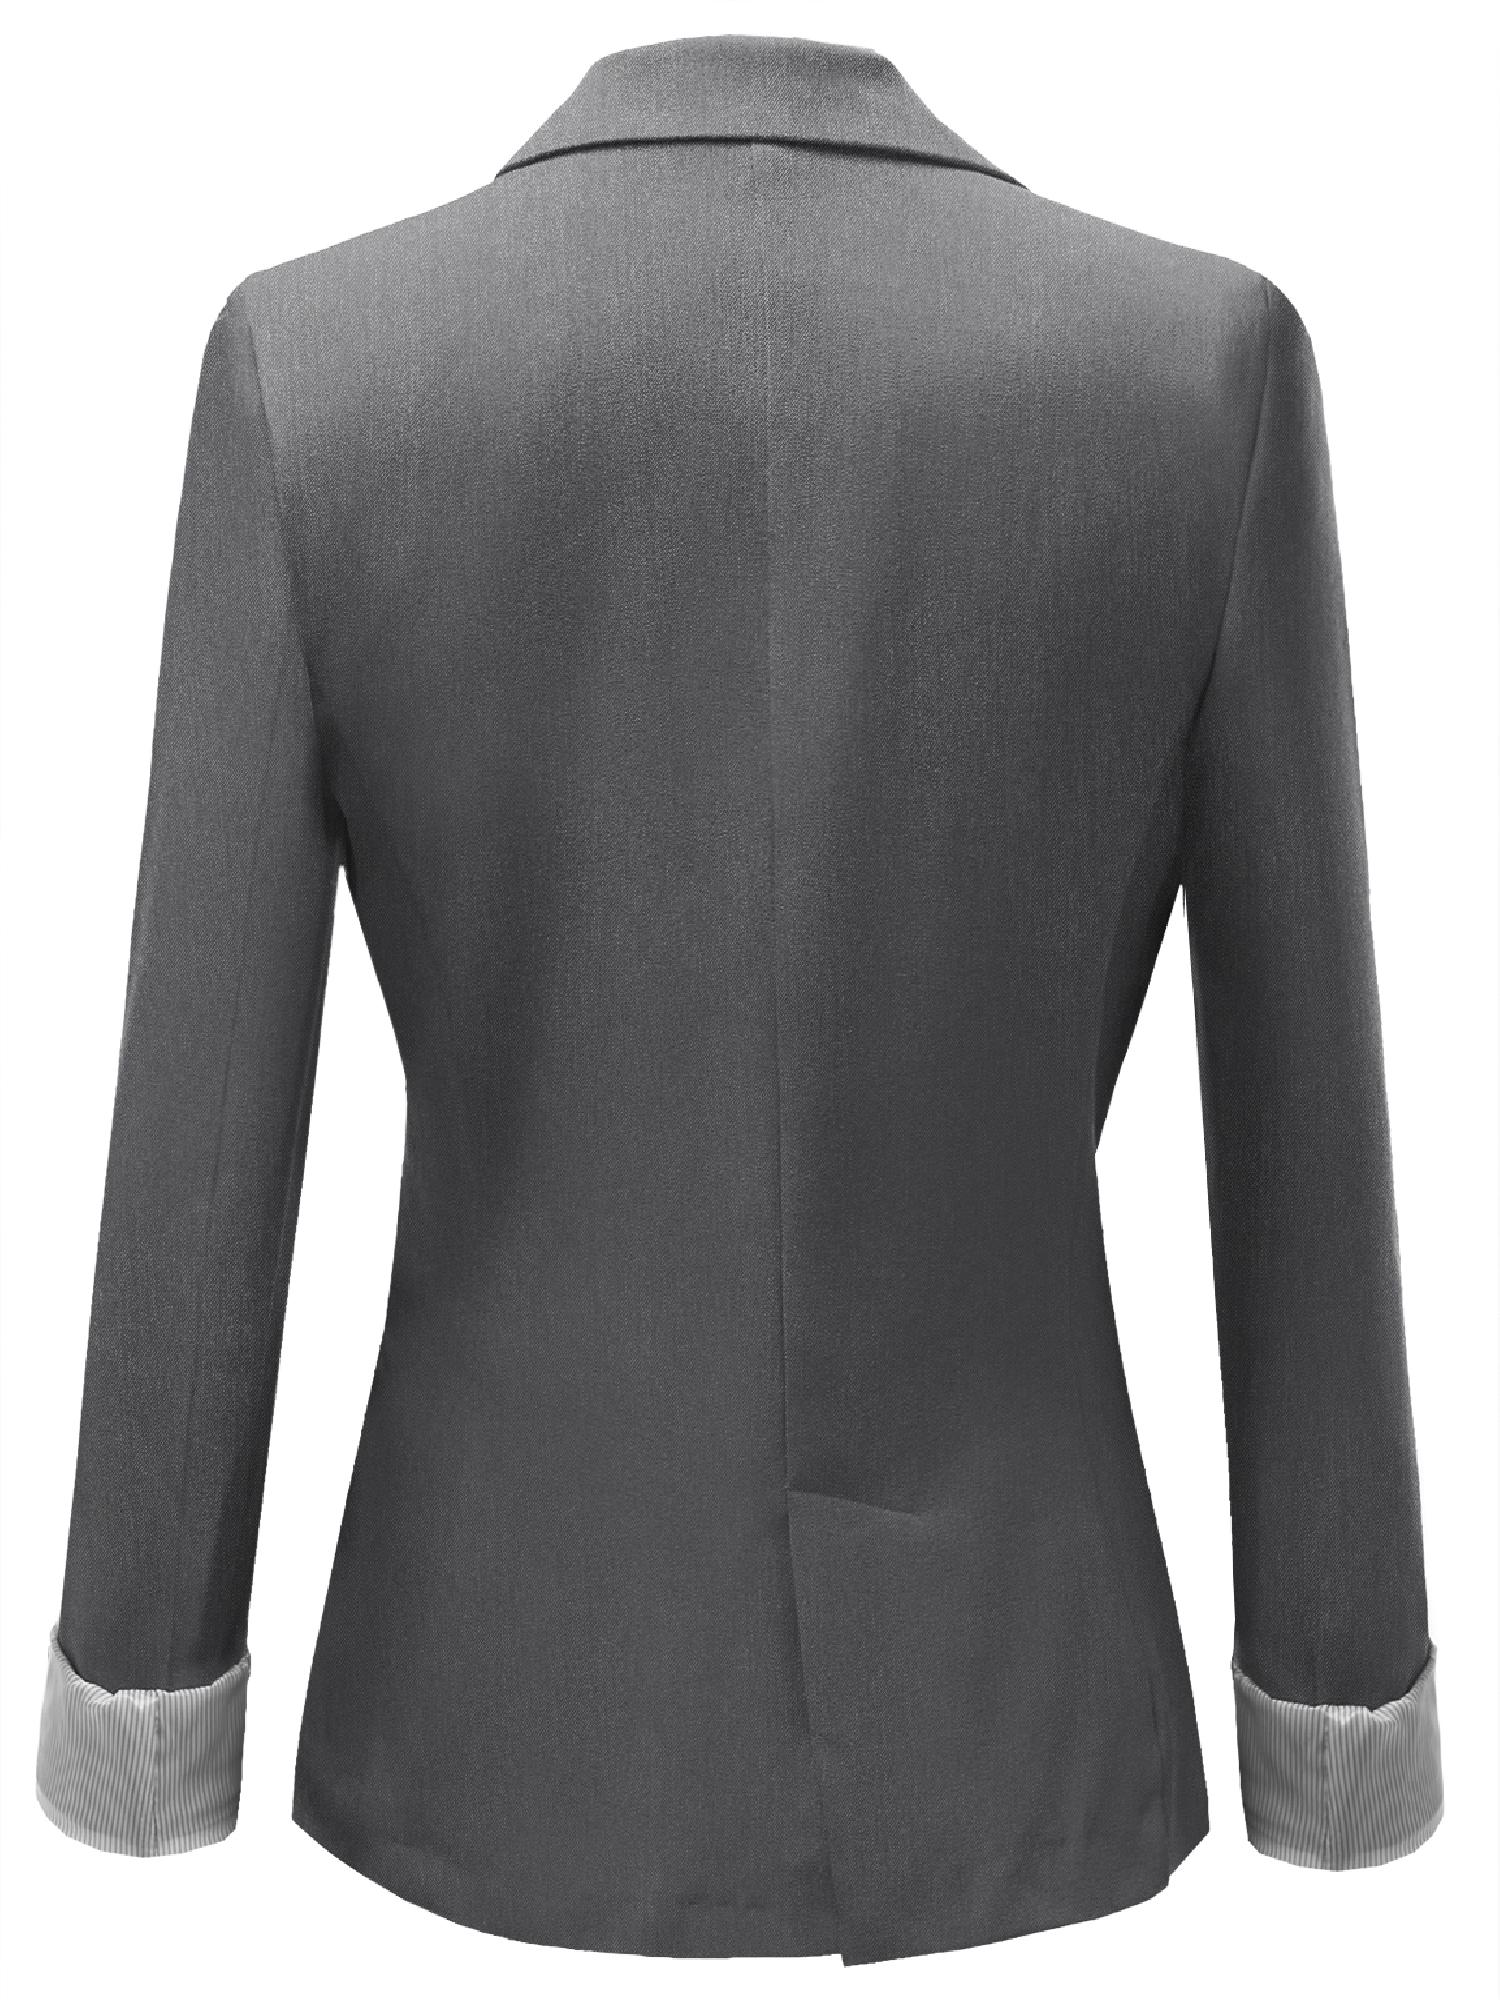 Awesome21 Womens Solid Long Sleeves One Button Closure Side Pocket Inner Stripe Blazer